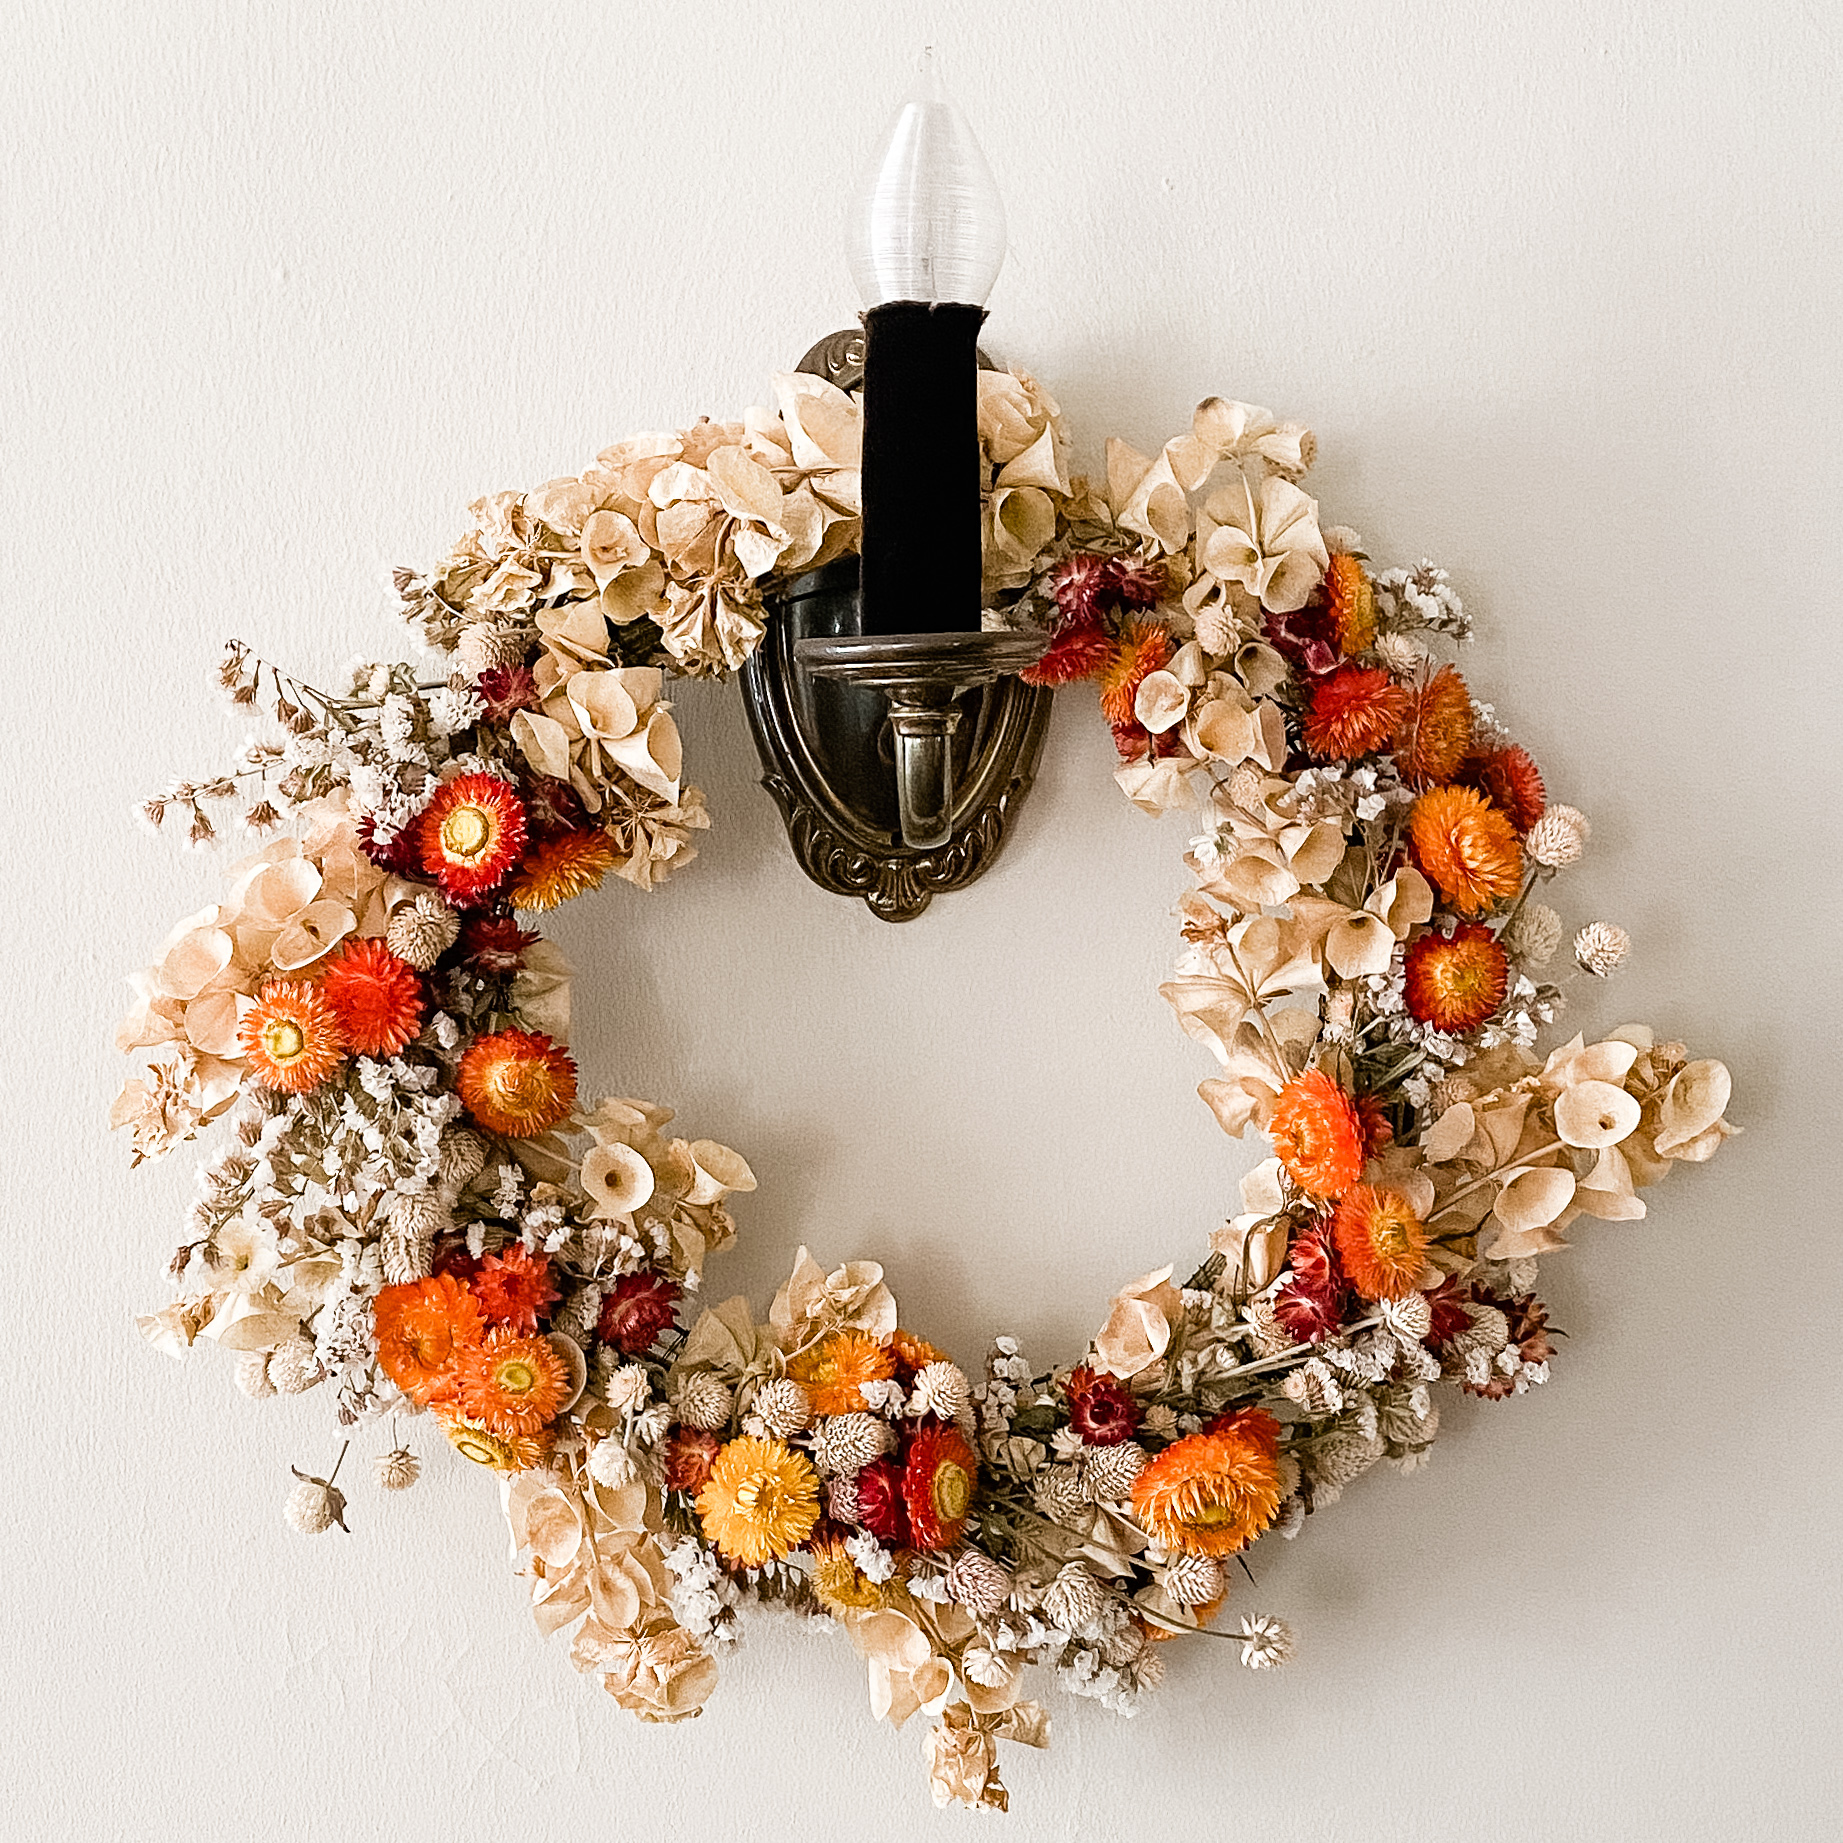 Summer Flowers to Autumn Colors Wreath